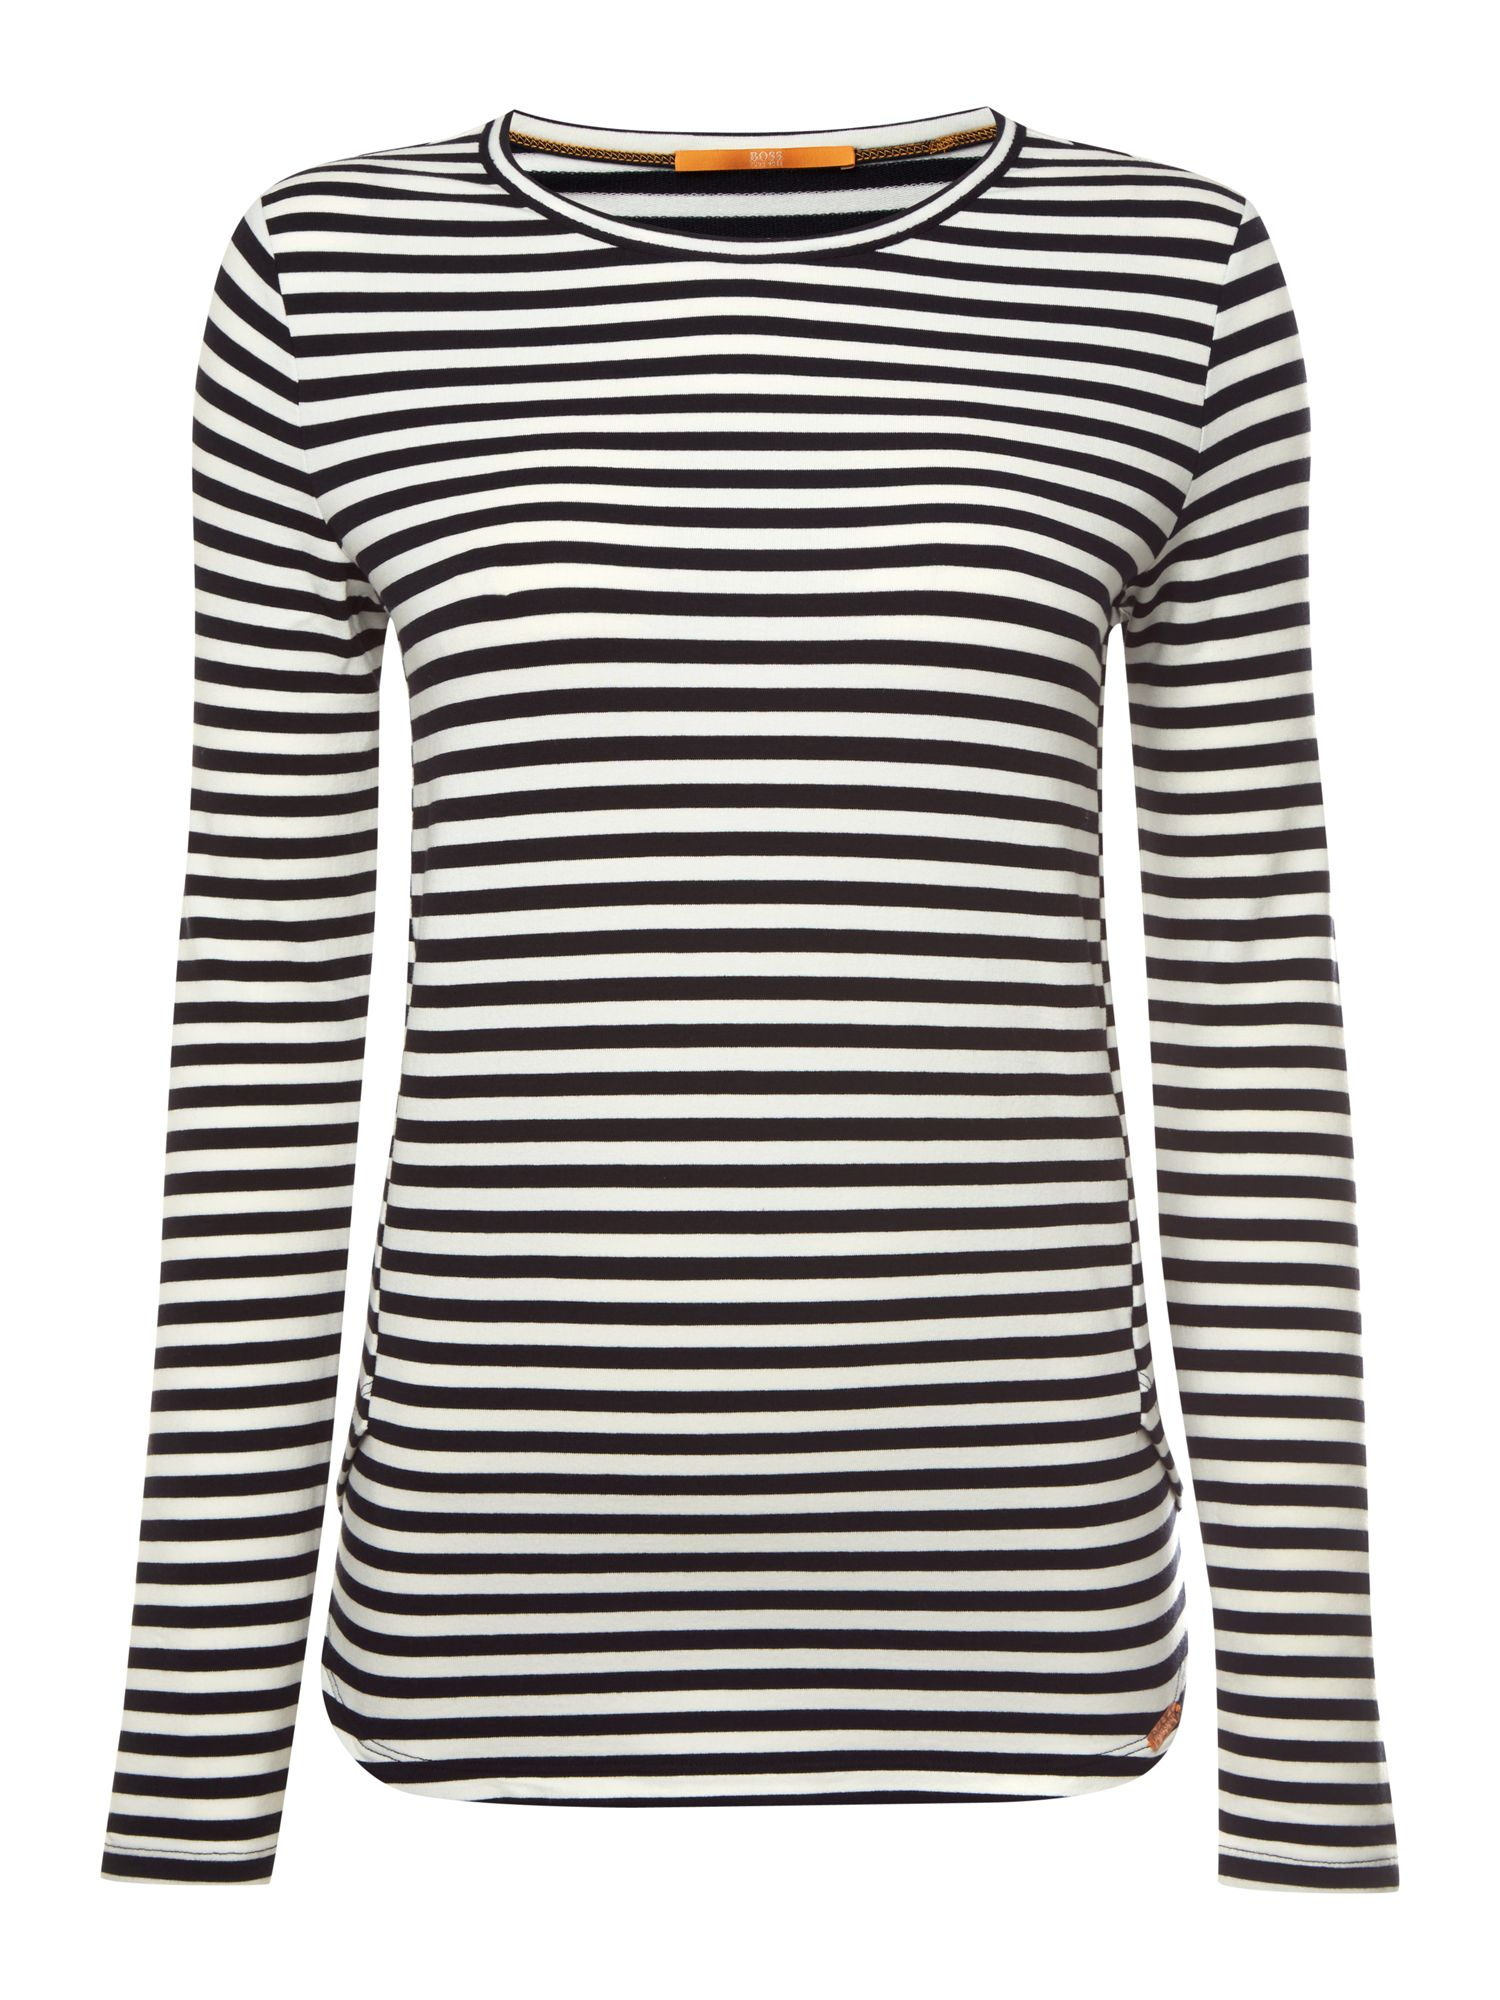 Hugo Boss Terstripe stripe jersey top in open miscellaneous, White